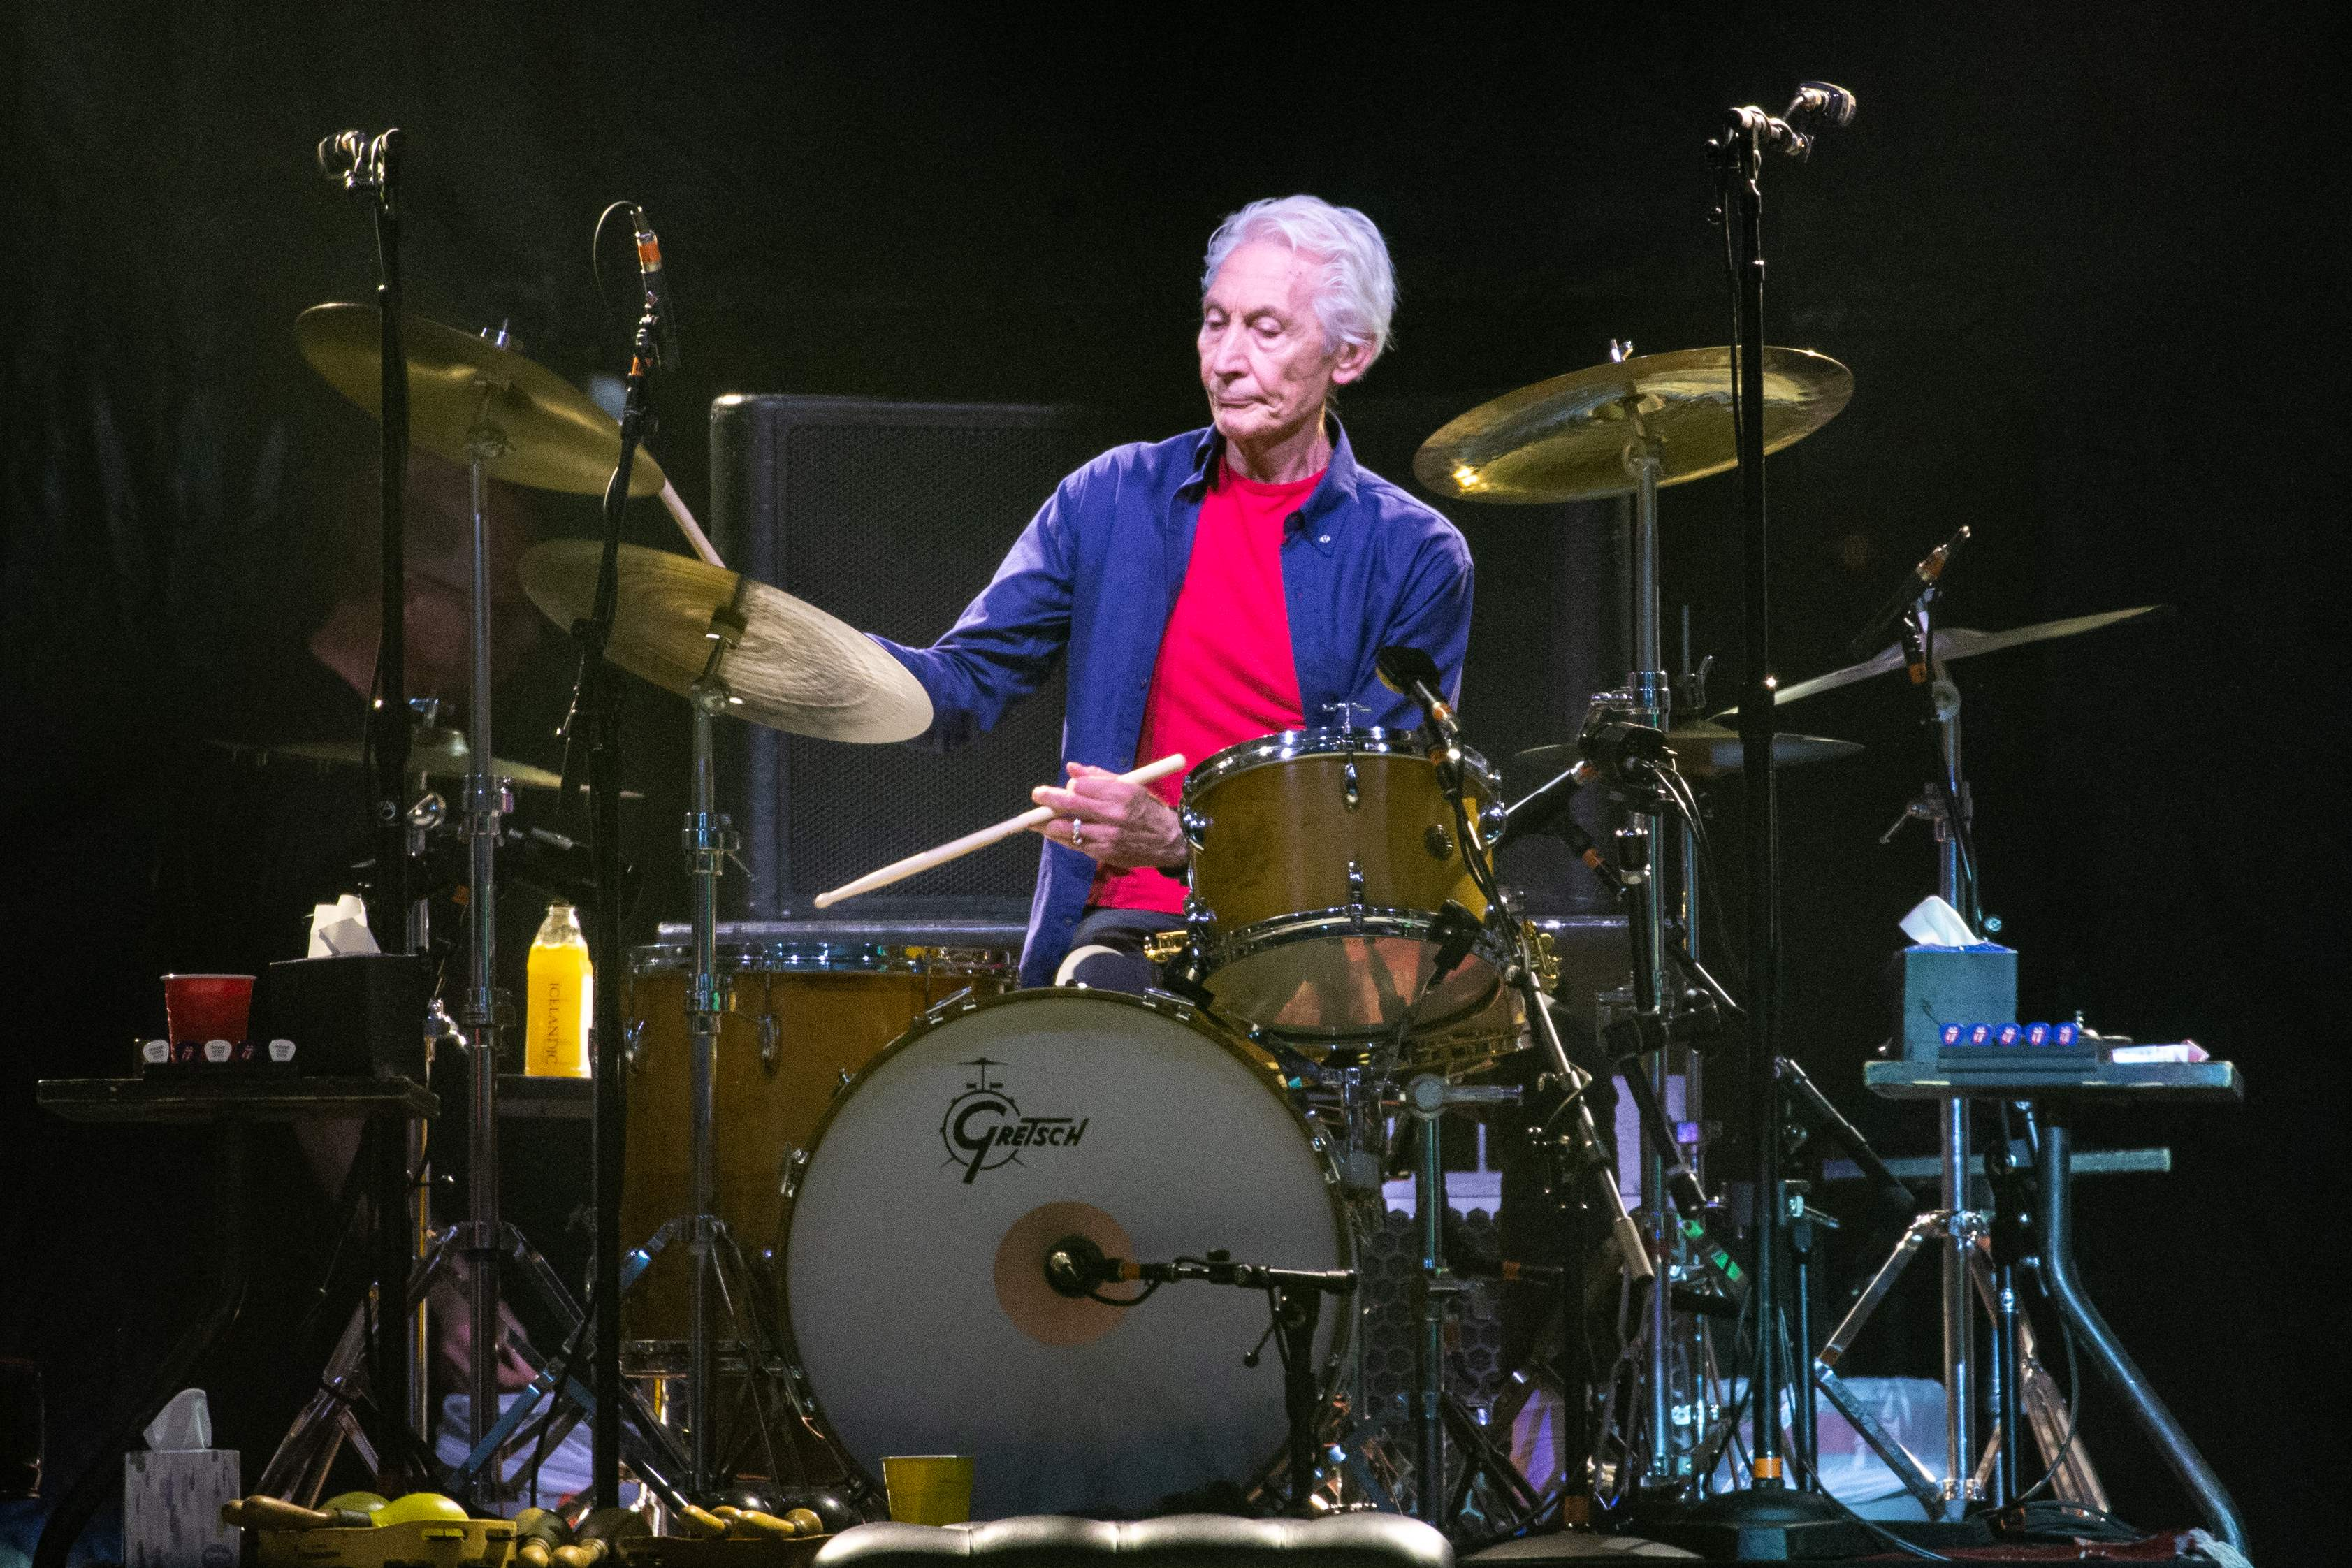 """In this file photo taken on July 28, 2019 The Rolling Stones drummer Charlie Watts performs on stage during their """"No Filter"""" tour at NRG Stadium in Houston, Texas. - Charlie Watts, drummer with legendary British rock'n'roll band The Rolling Stones, died on August 24, 2021 aged 80, according to a statement from his publicist."""